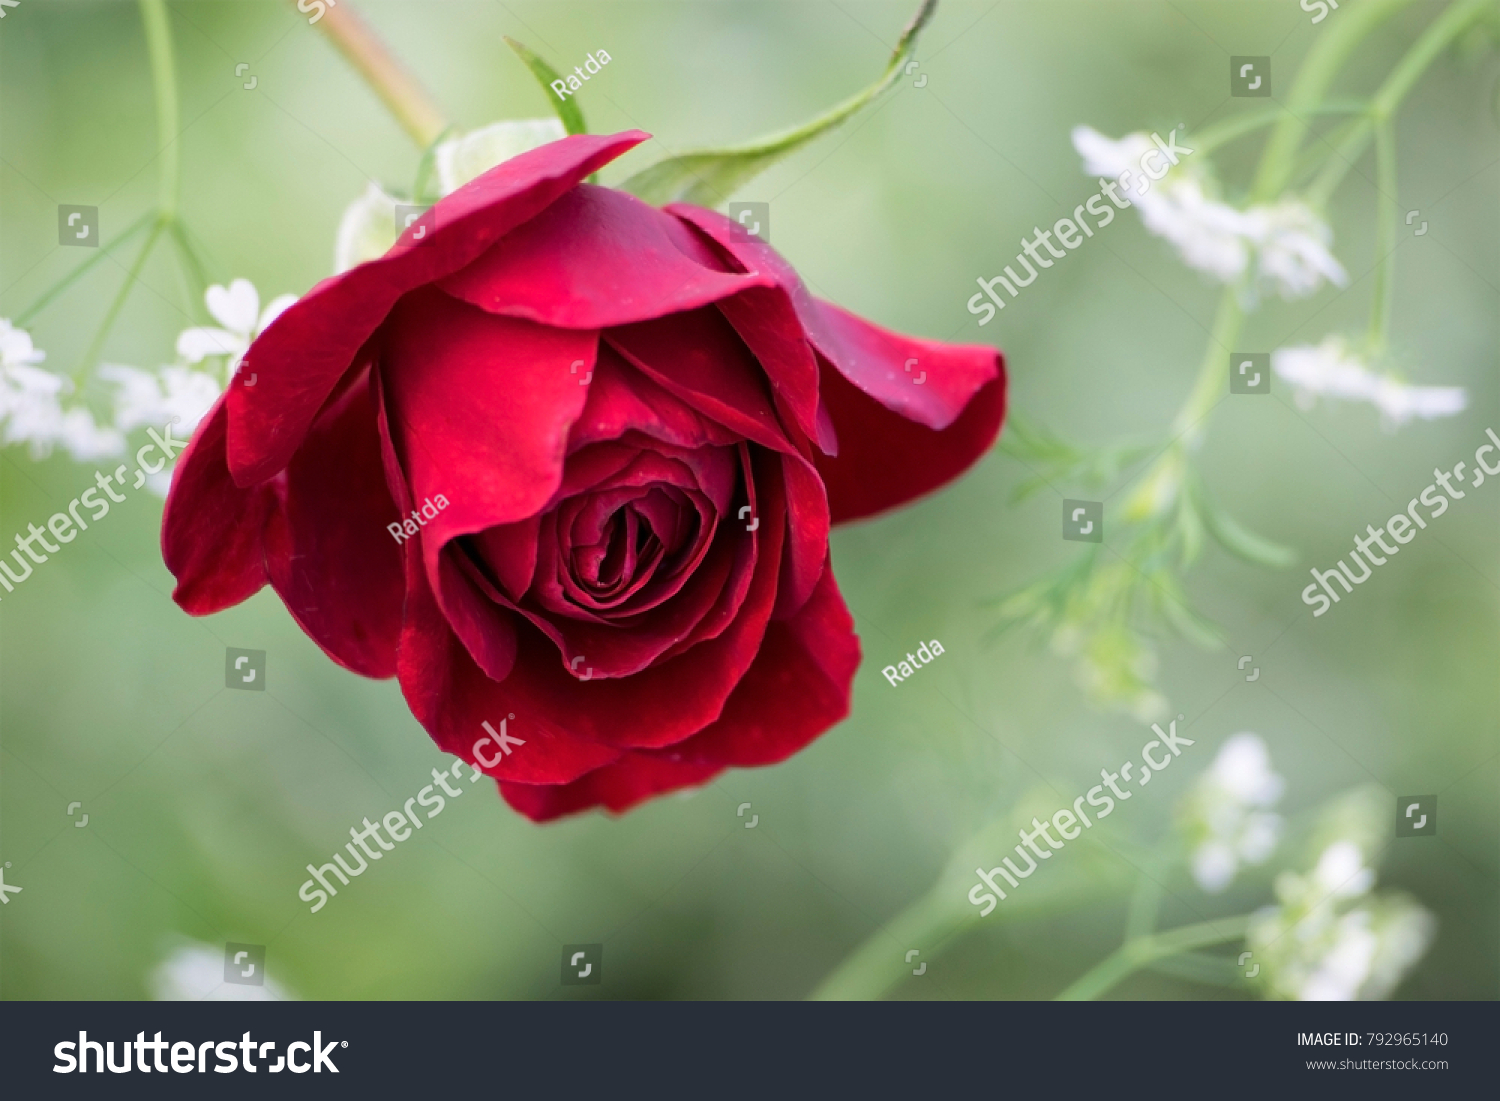 Beautiful Deep Red Rose Bloom Meaning Stock Photo (100% Legal ...